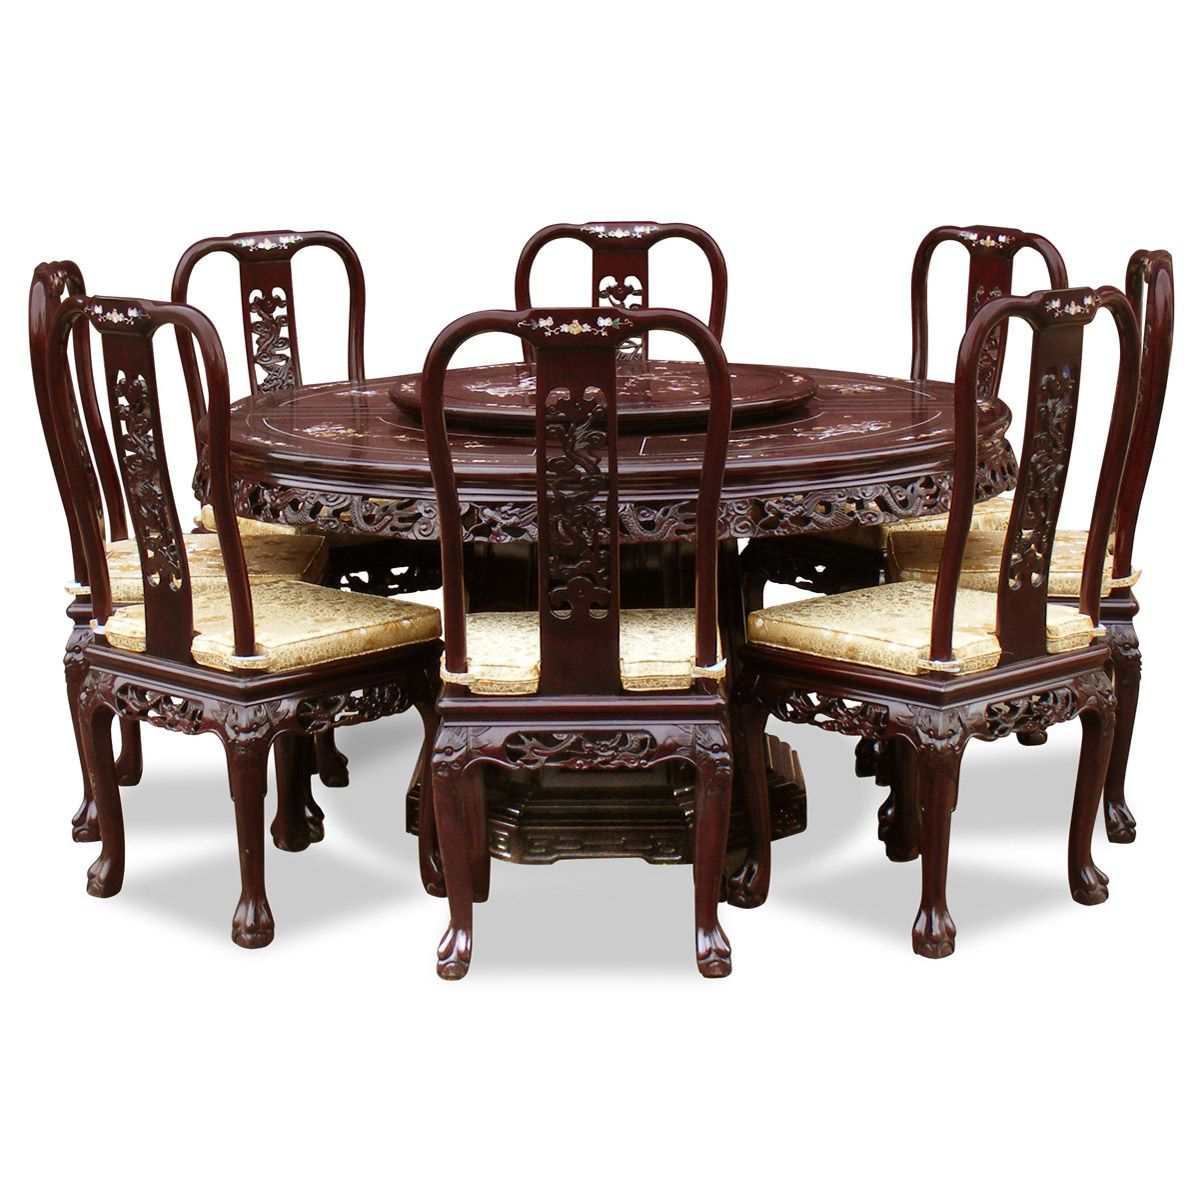 60in Rosewood Queen Ann Pearl Inlay Motif Round Dining Table with ...